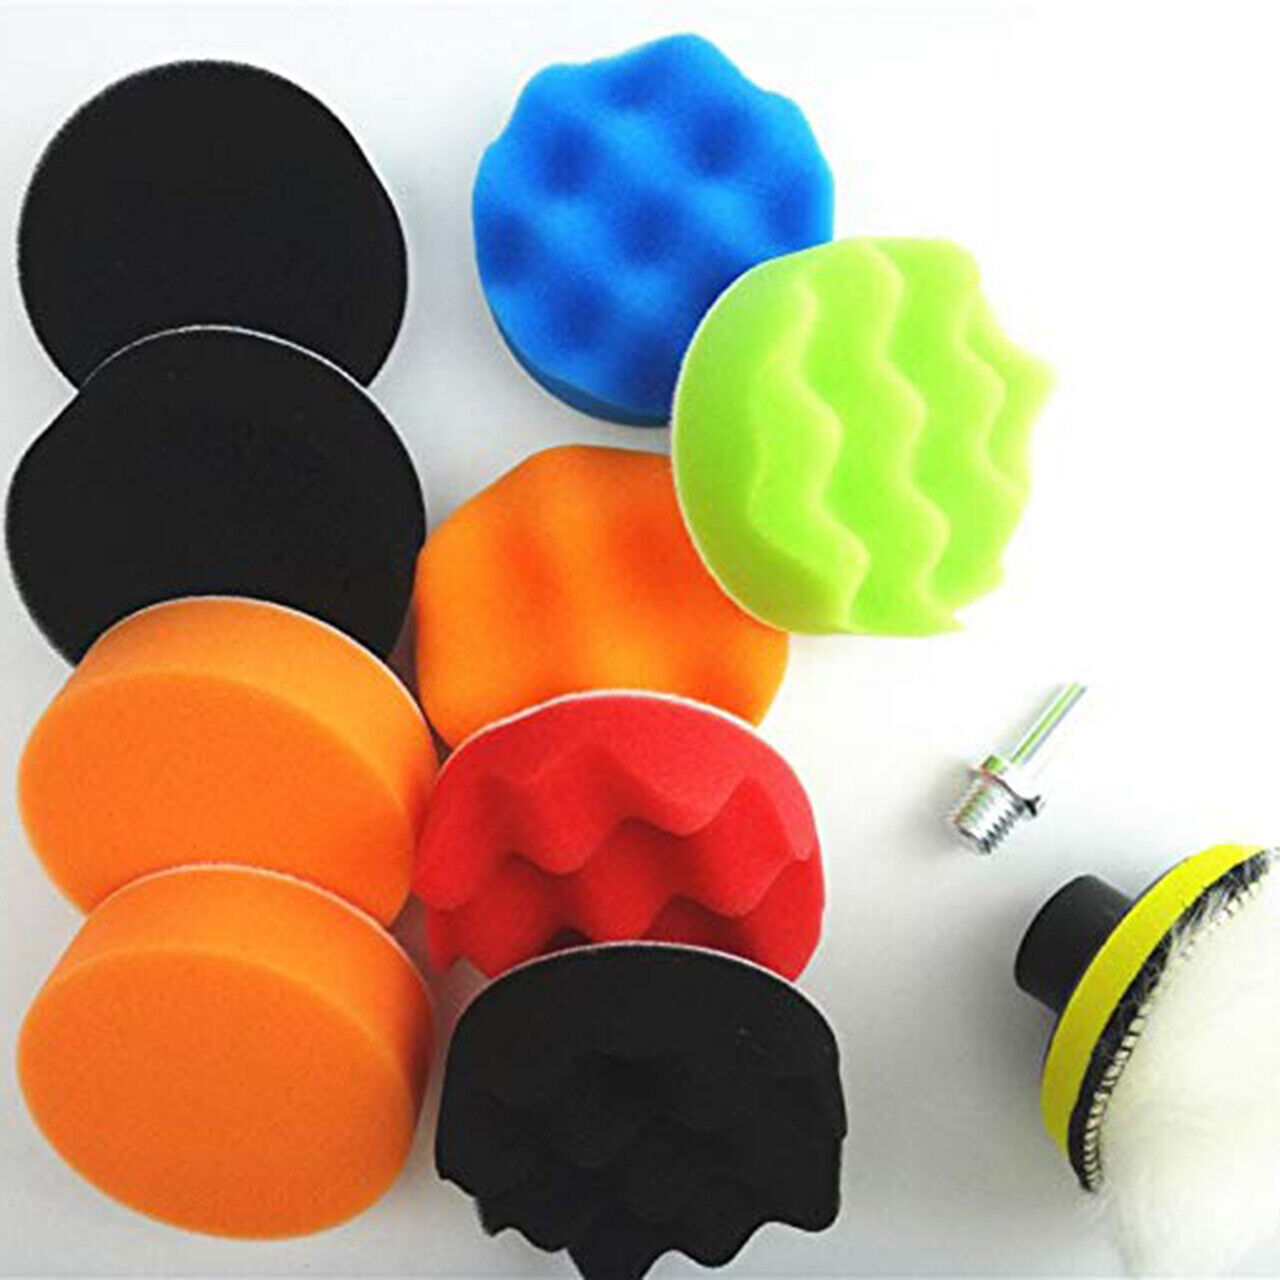 4Pcs/Set 3/4/5/6/7inch Car Auto Polishing Sponge Foam Pads Buffing Wax Polisher Mitts, Bonnets & Buffing Pads